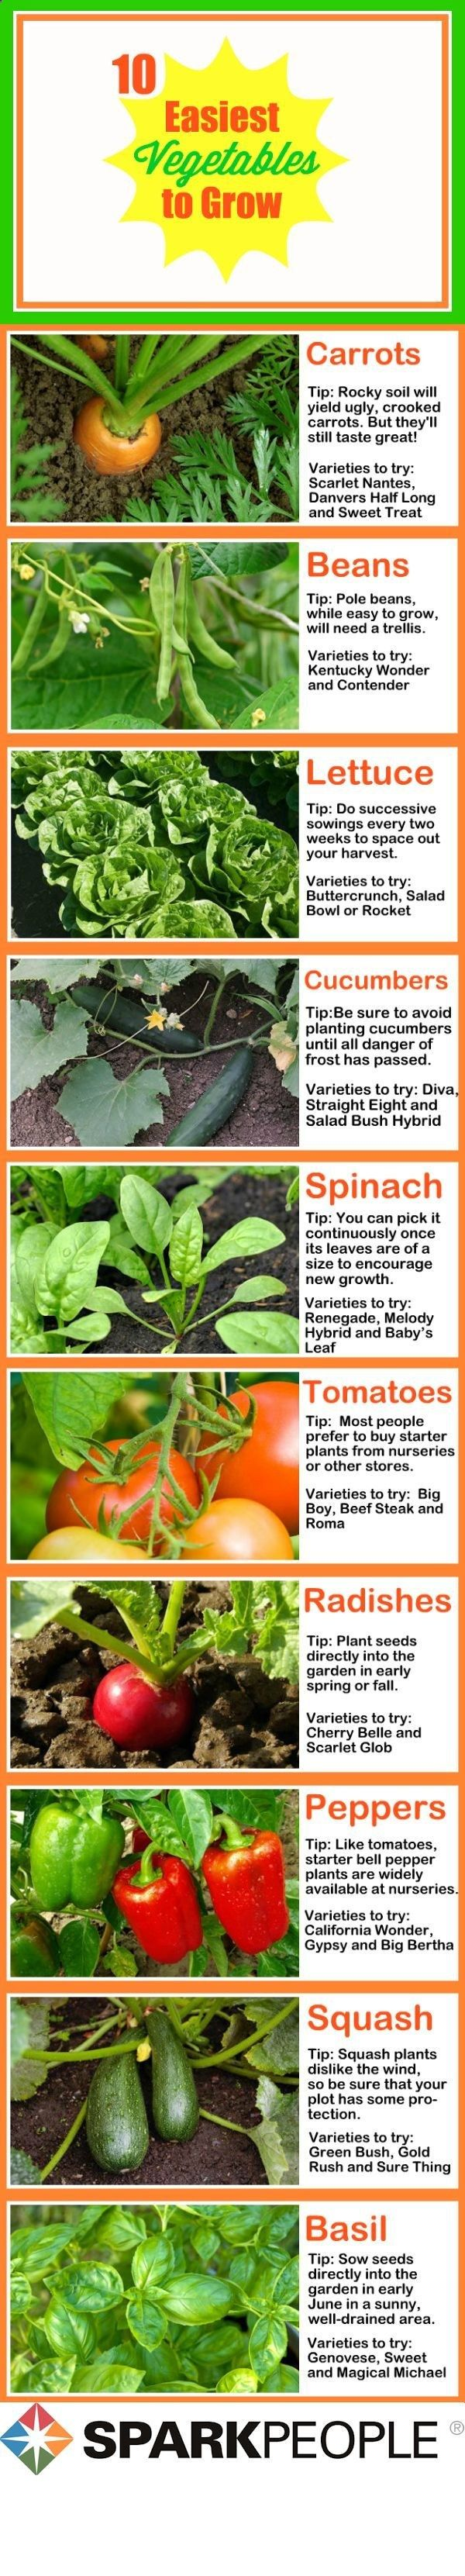 Ordinaire The 10 EASIEST Vegetables To Grow: Make This THE YEAR You Start That Vegetable  Garden